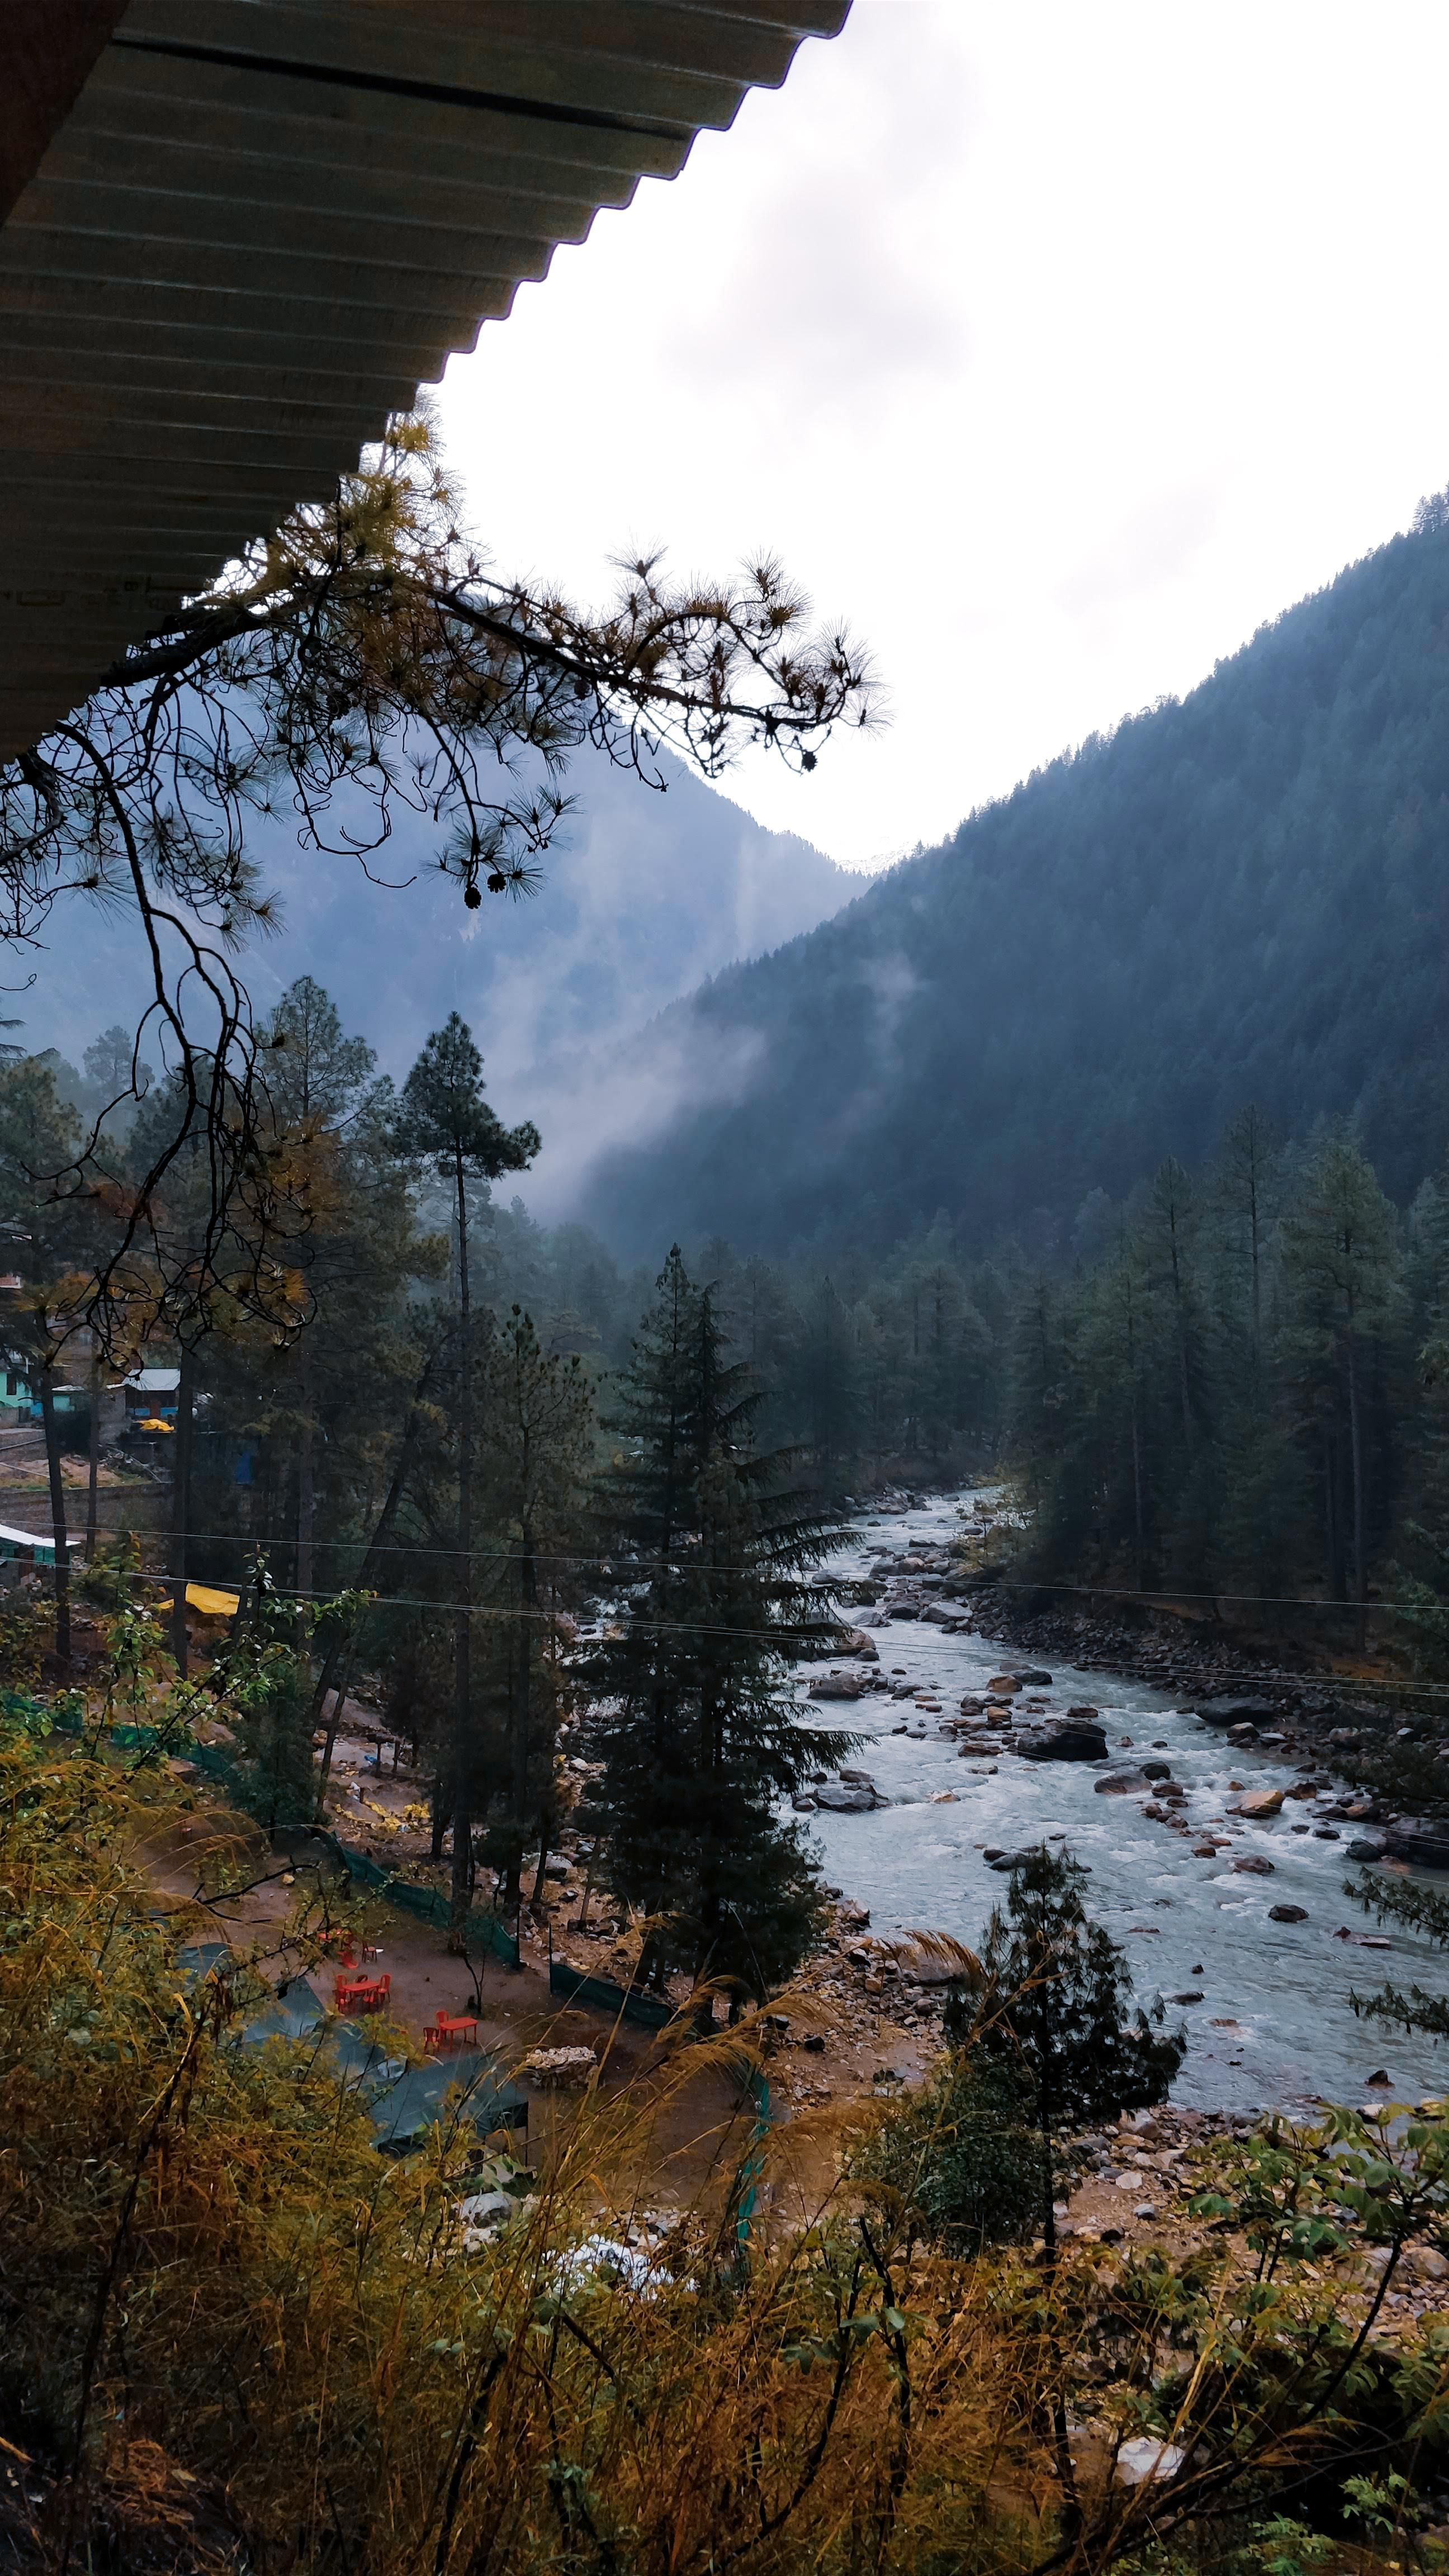 , Foggy river by the mountains. Himachal Pradesh, India. [OC] 2592×4608, My Travels Blog 2020, My Travels Blog 2020